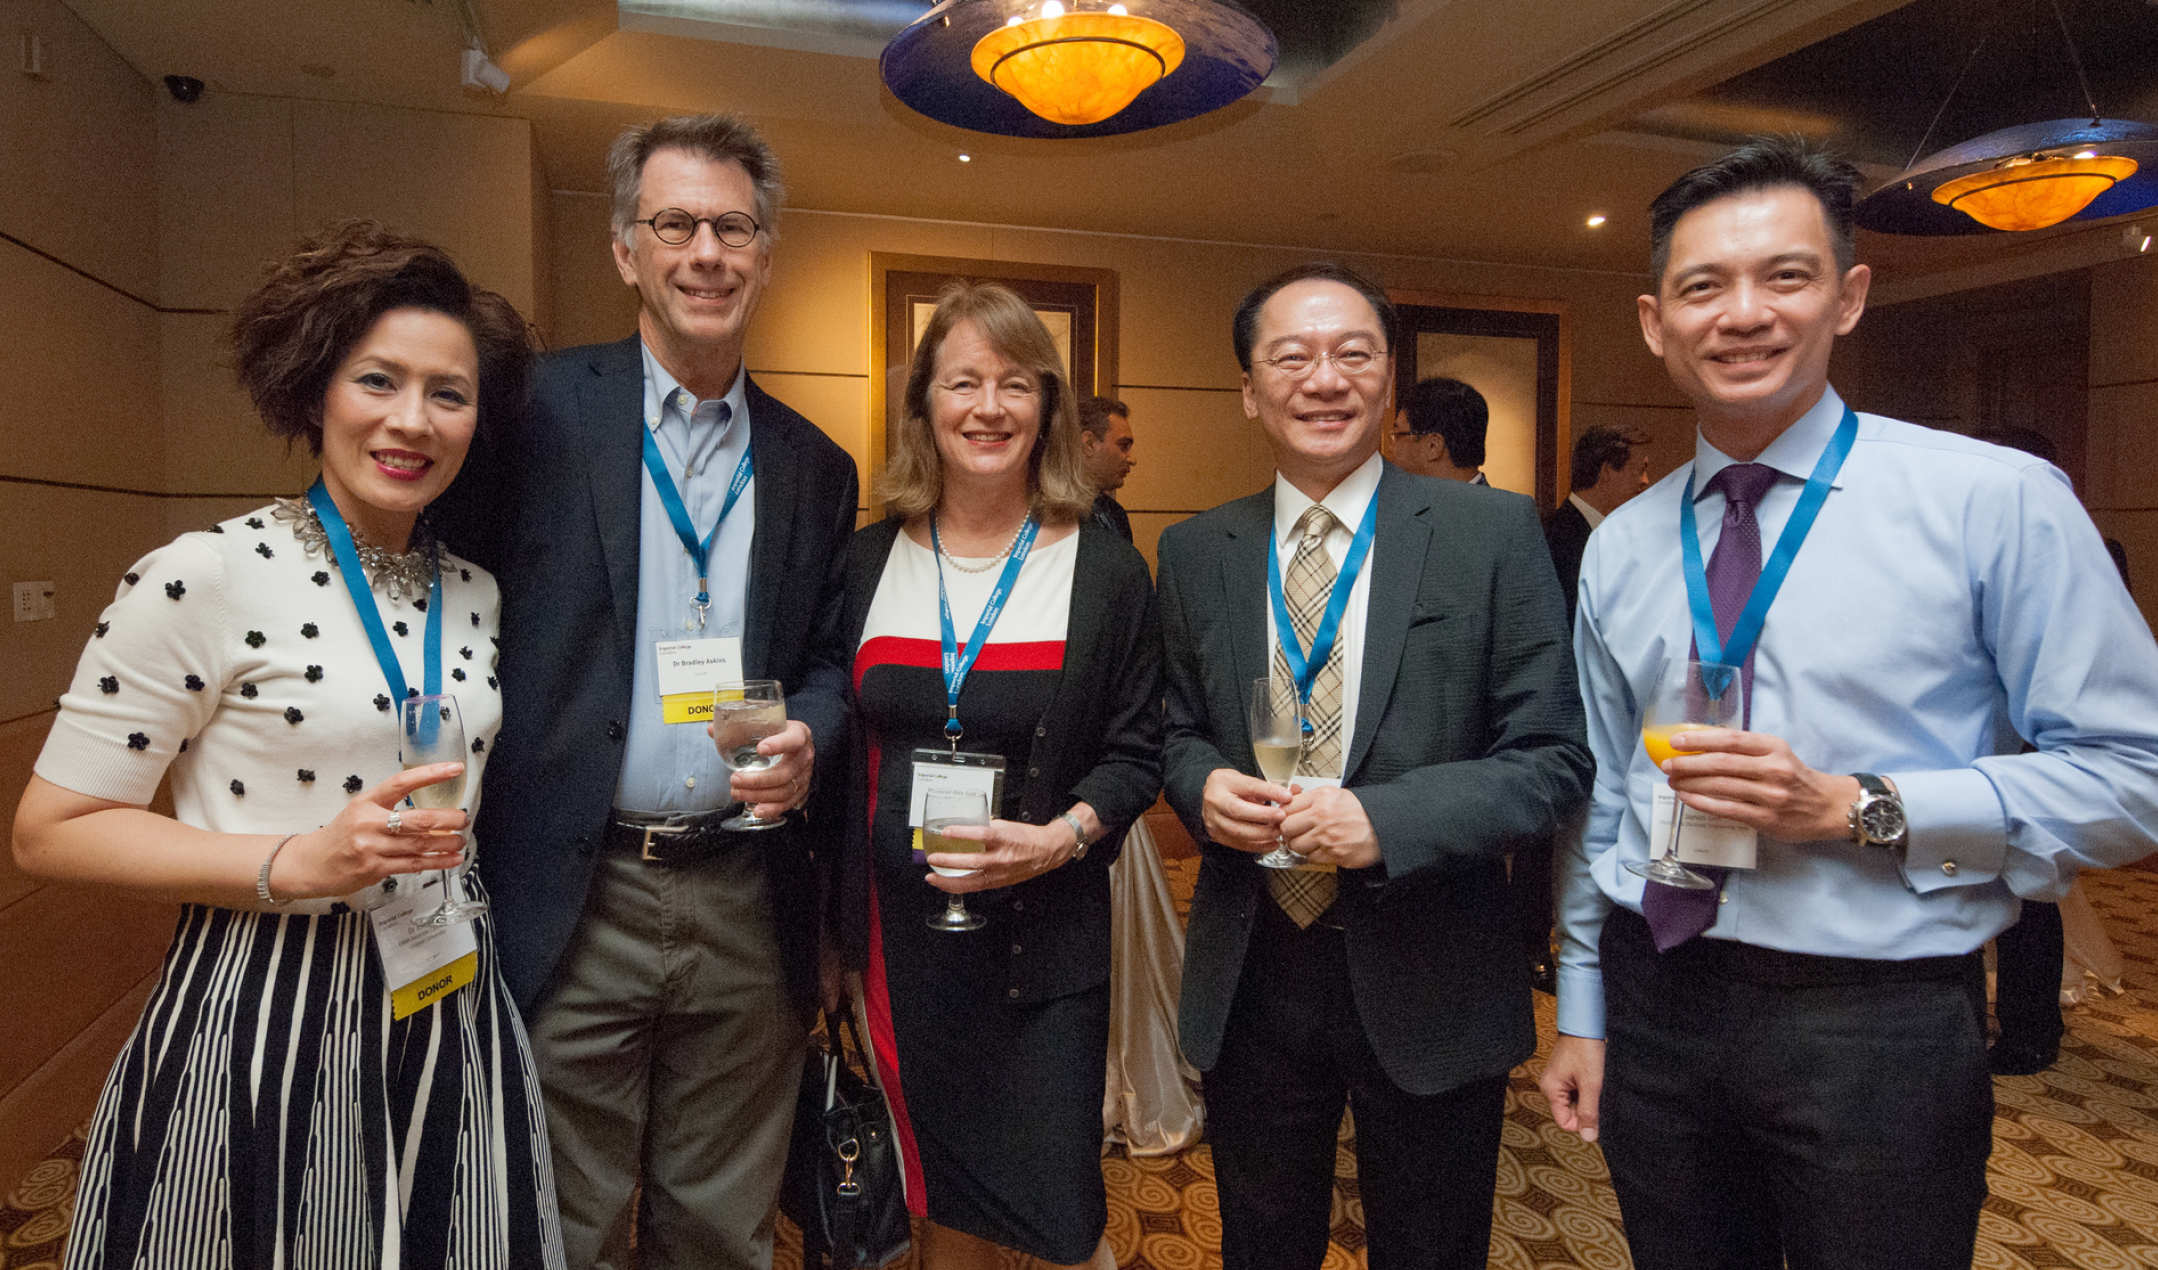 President Gast and her husband Bradley meet alumni and friends in Singapore